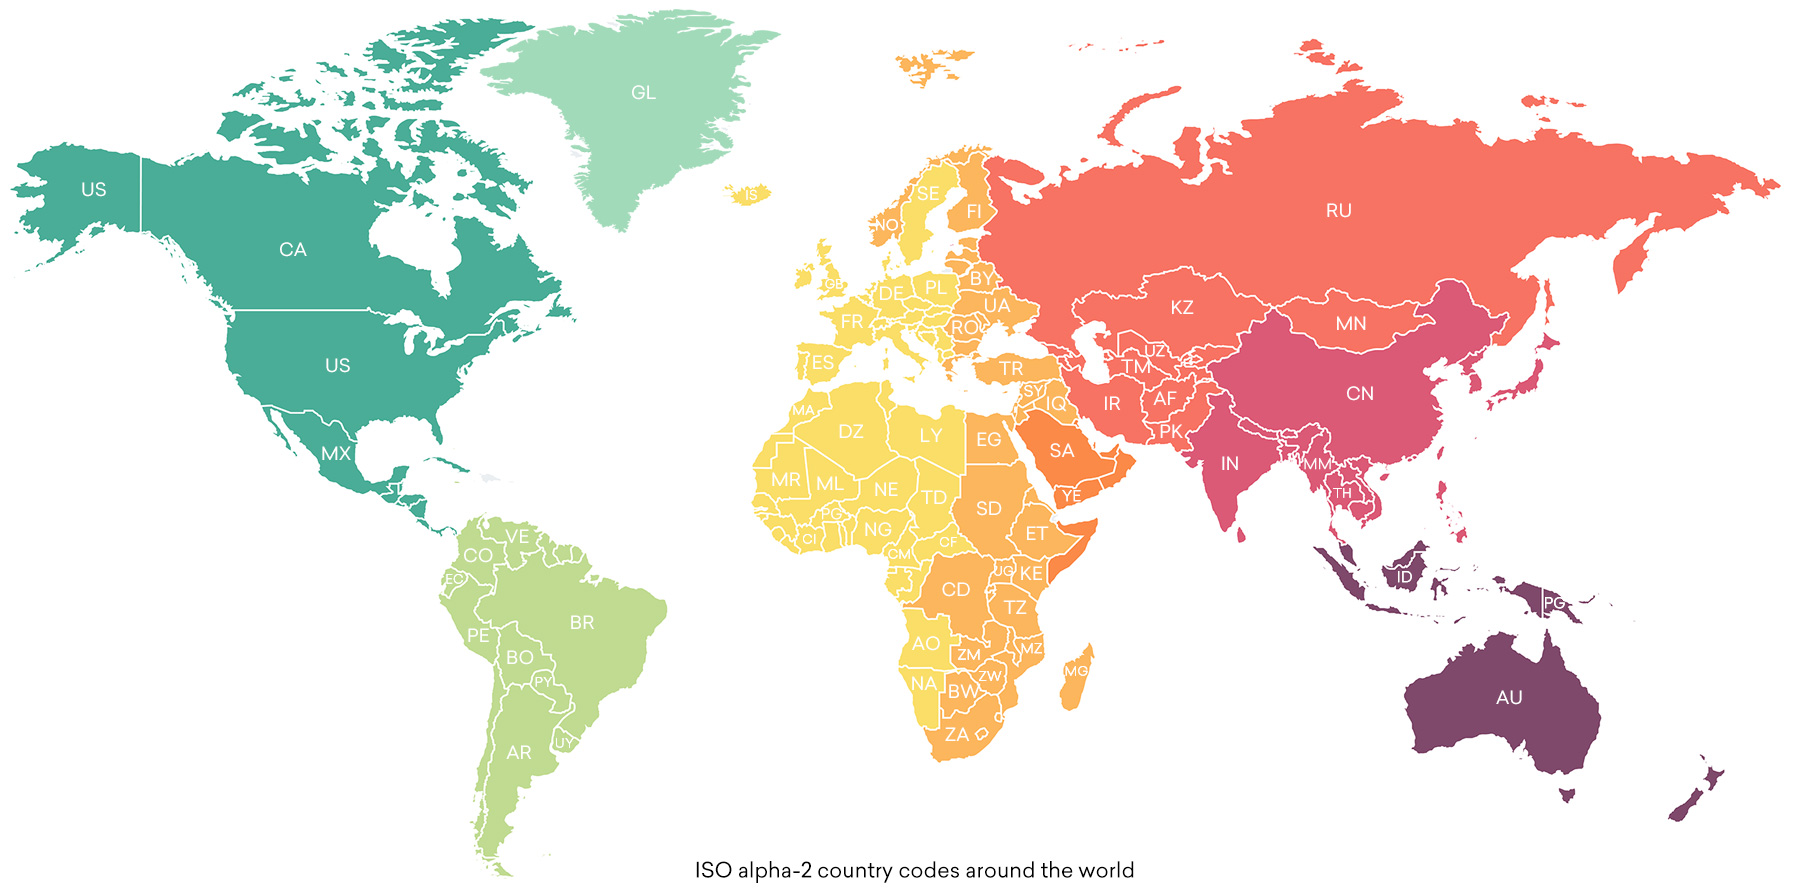 ISO Alpha-2 country codes around the world